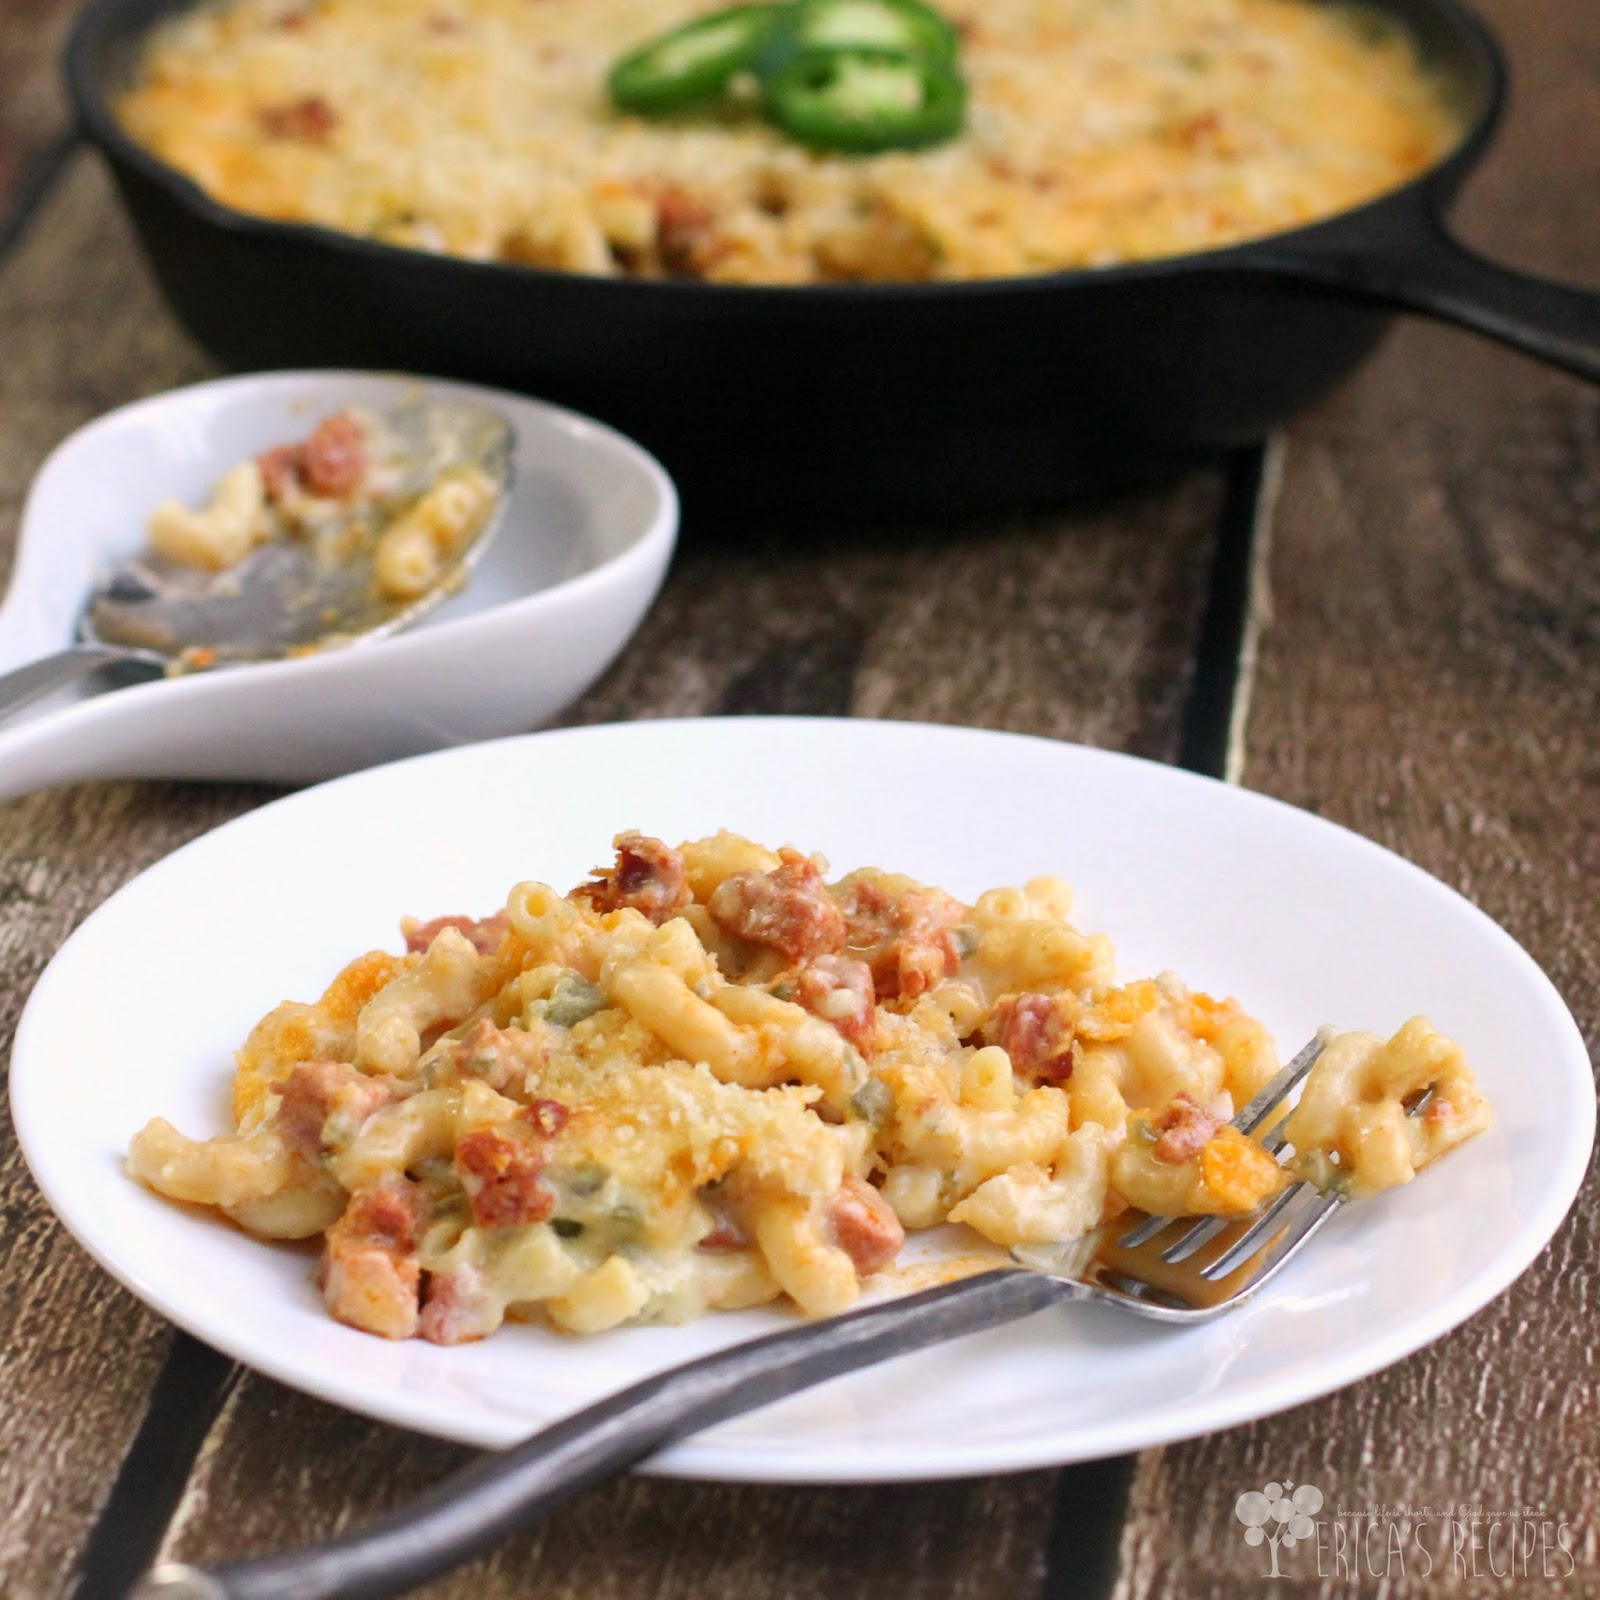 Jalapeno and Chorizo Macaroni & Cheese